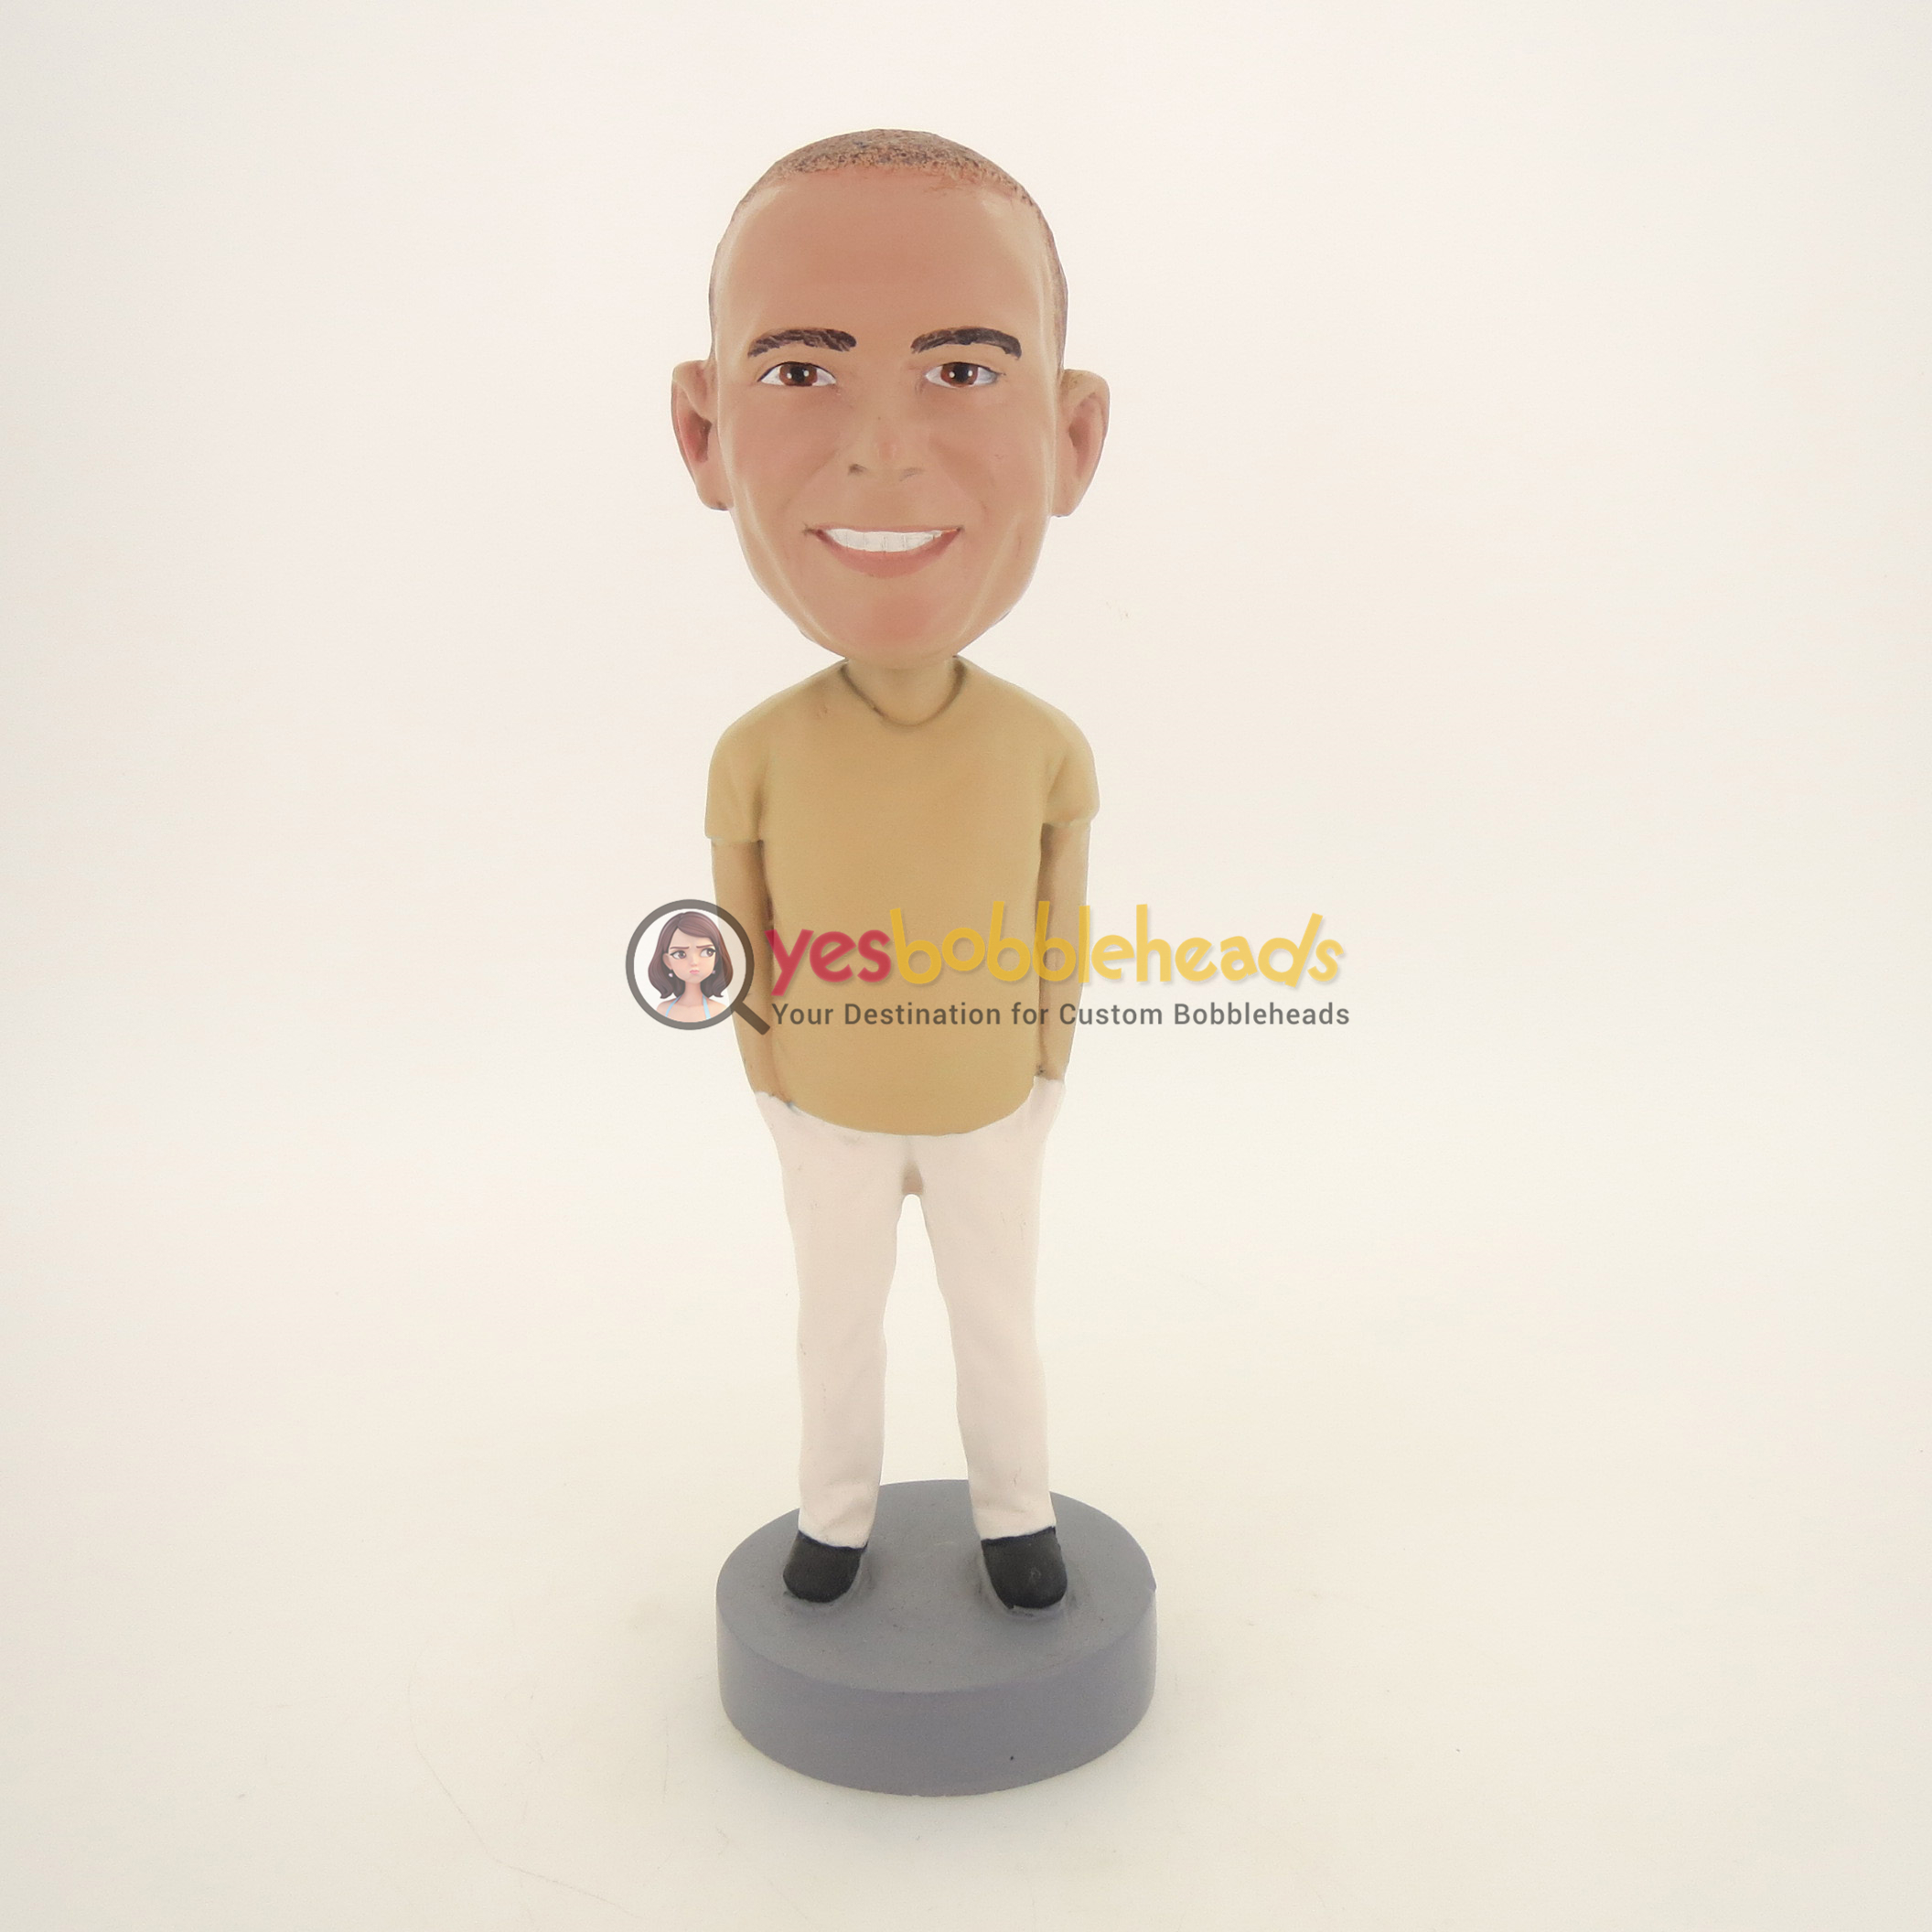 Picture of Custom Bobblehead Doll: Casual Man With Both Hands In Pocket